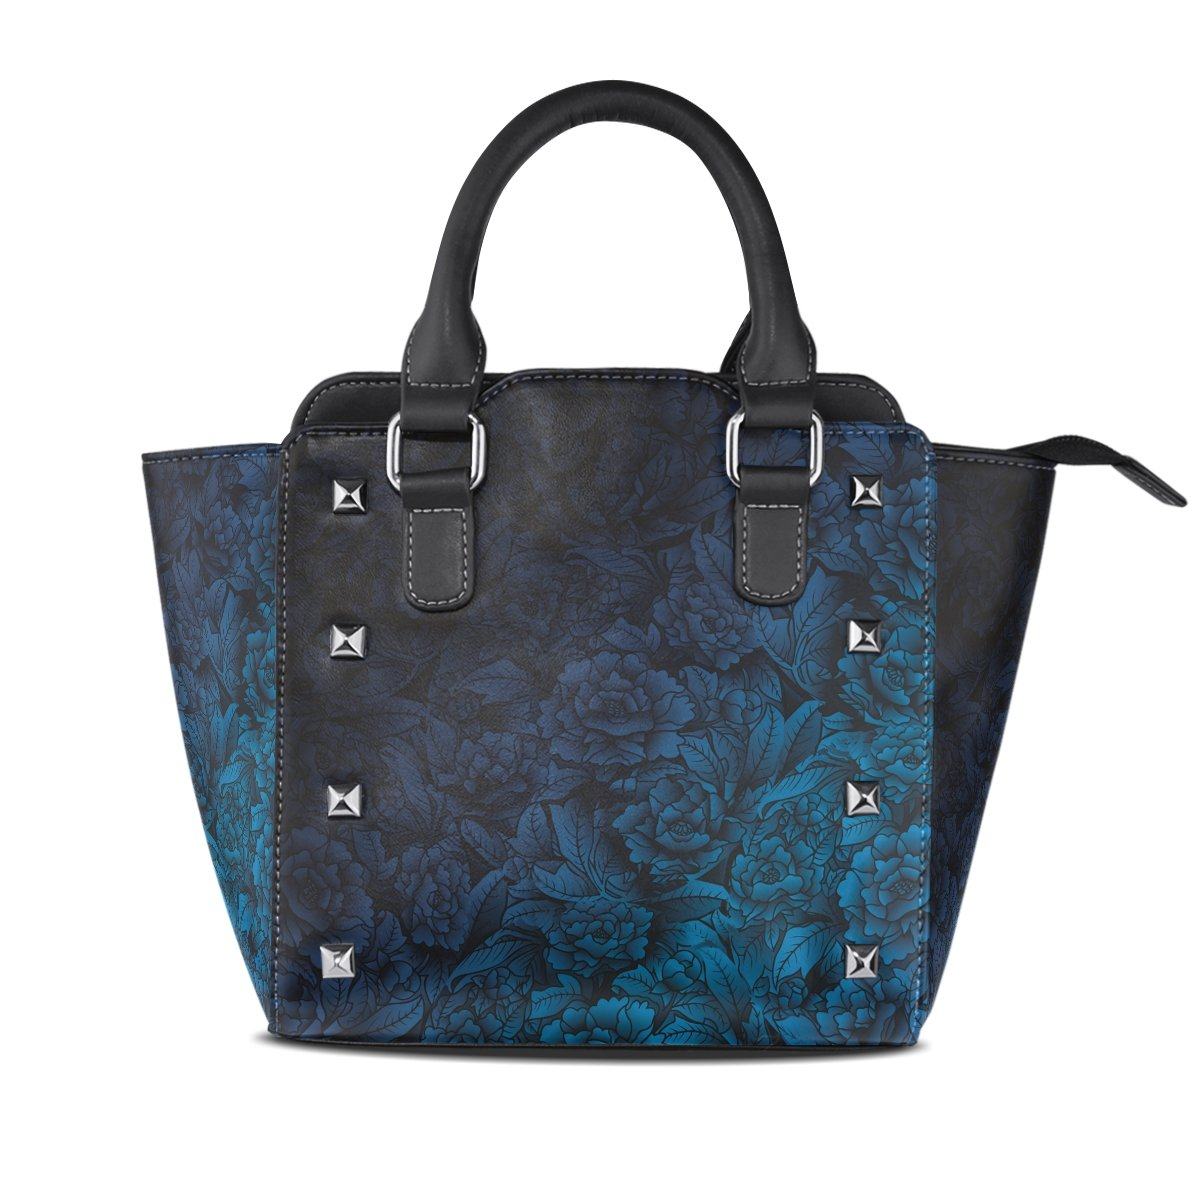 Womens Genuine Leather Hangbags Tote Bags blueeBlack Flower Purse Shoulder Bags